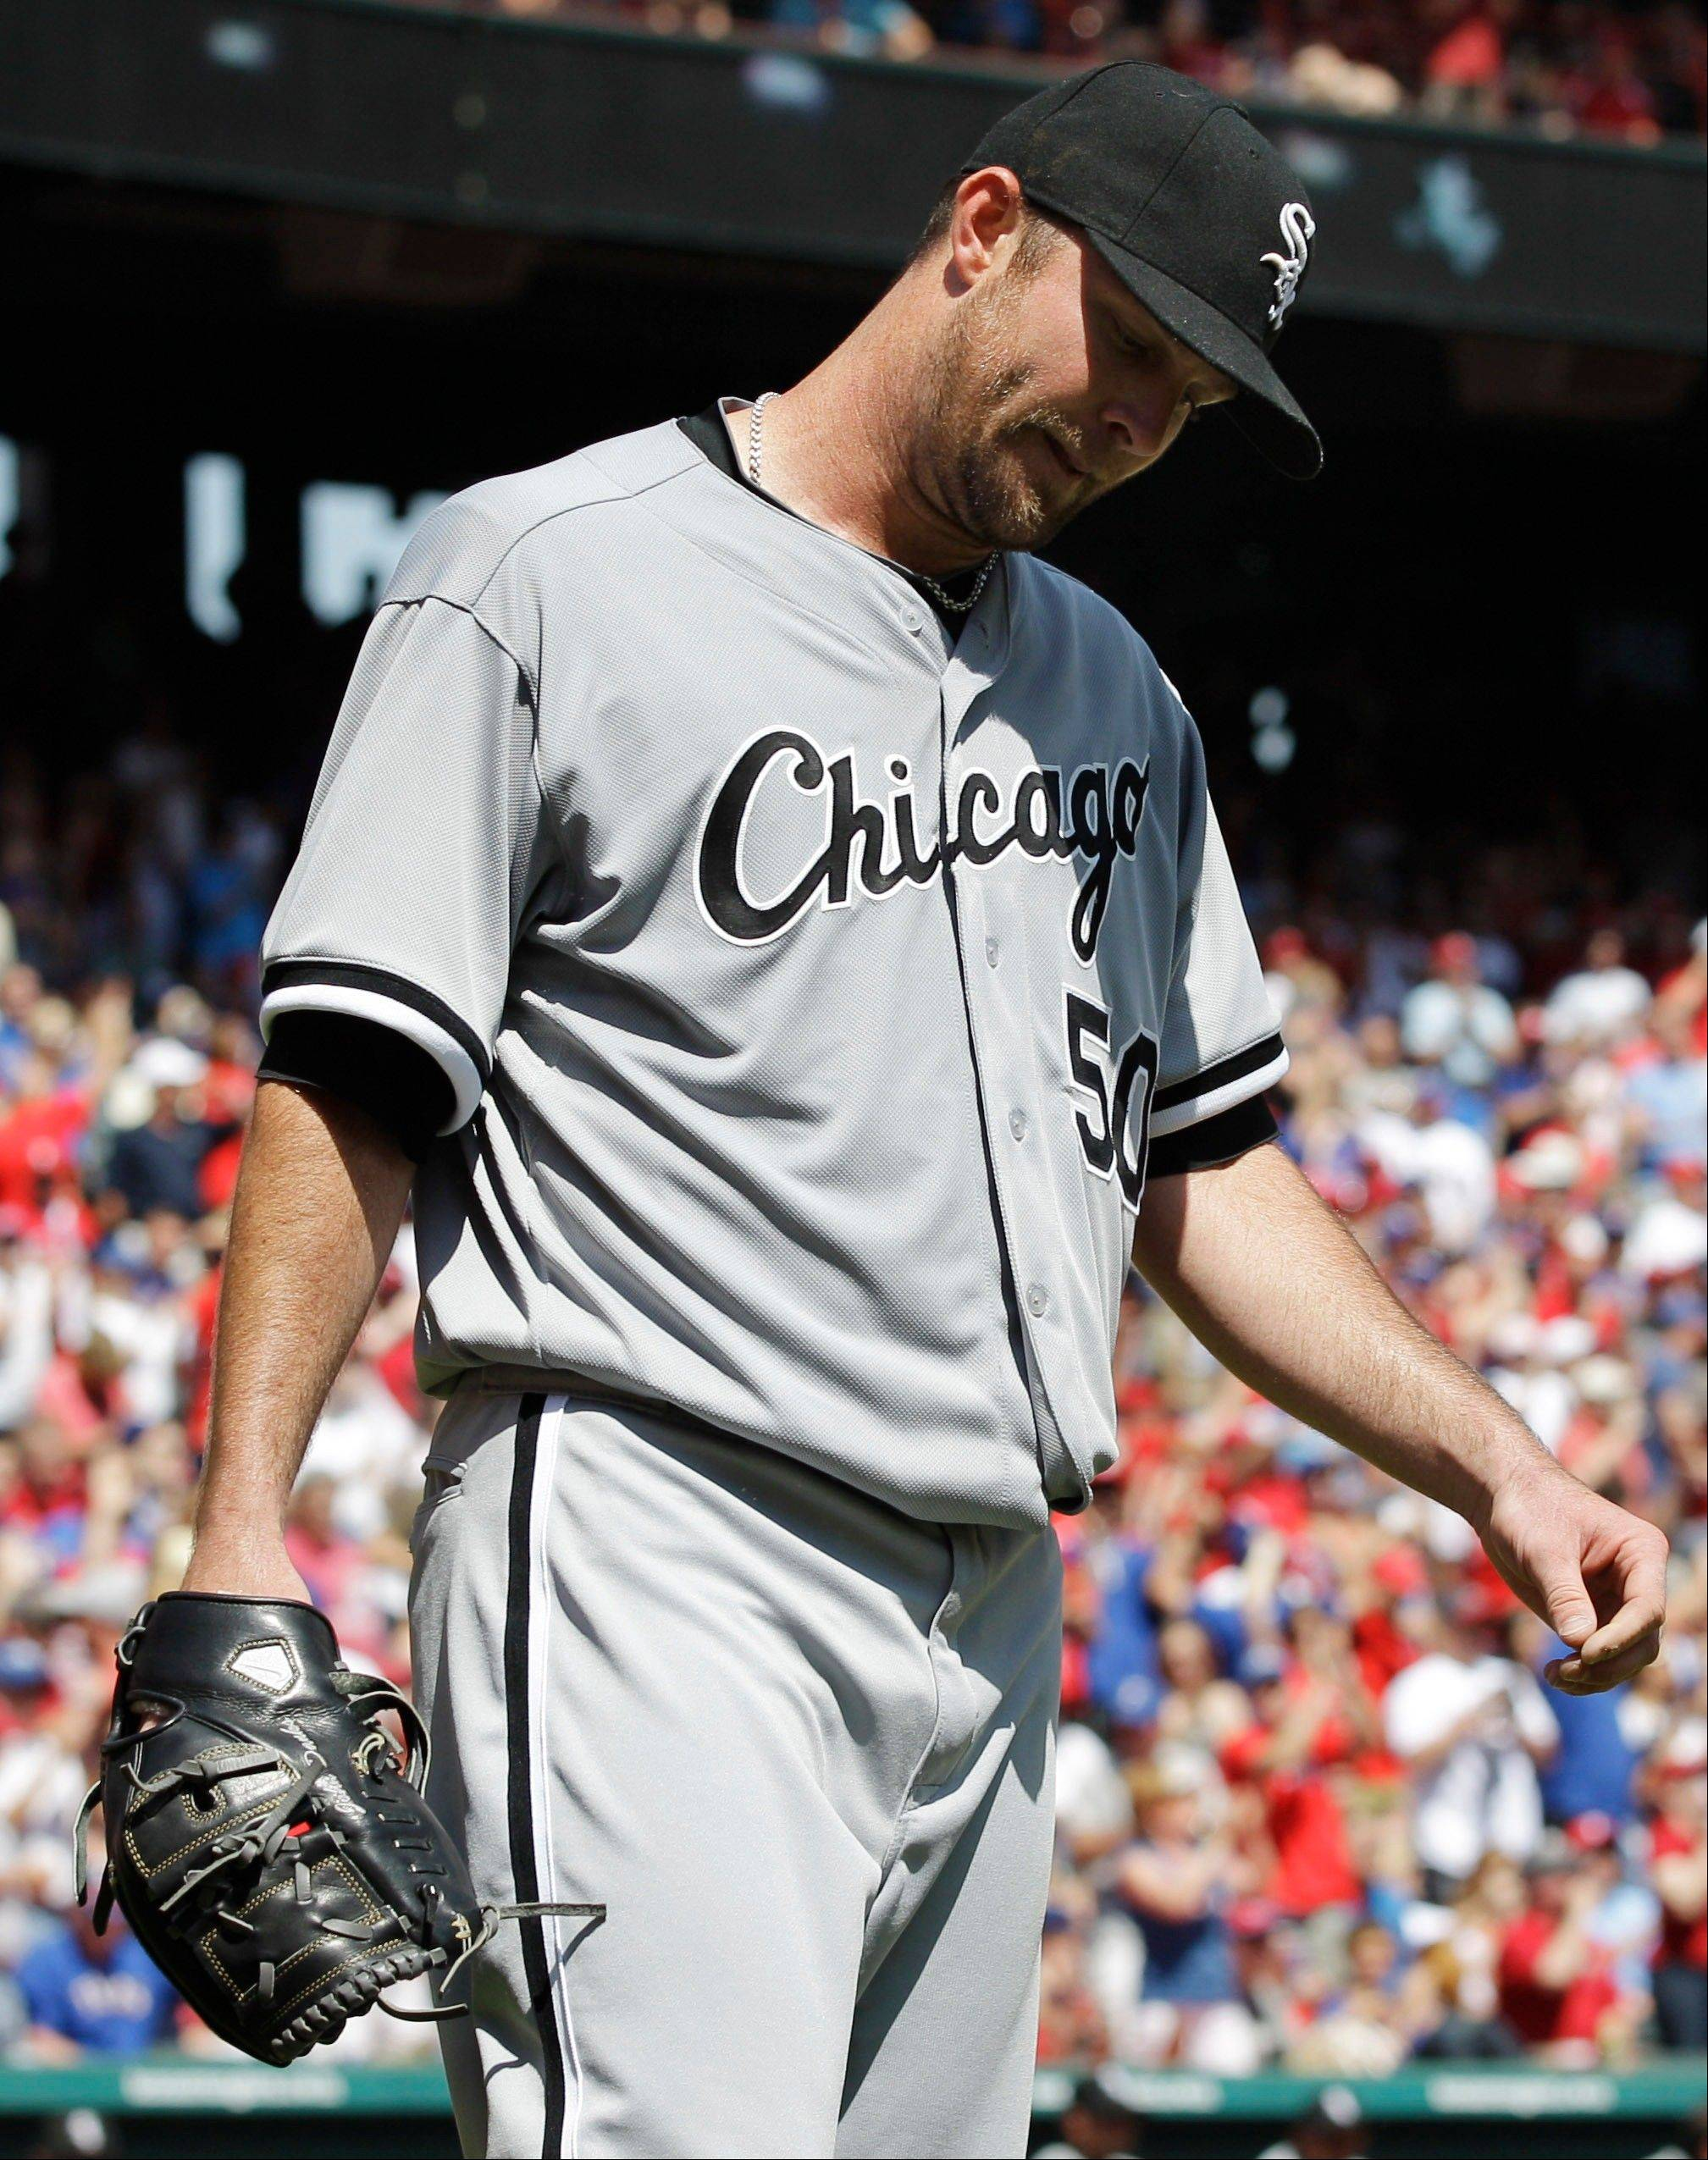 White Sox starter John Danks has been out since May 20 with a shoulder injury, and a September return looks like the best-case scenario.